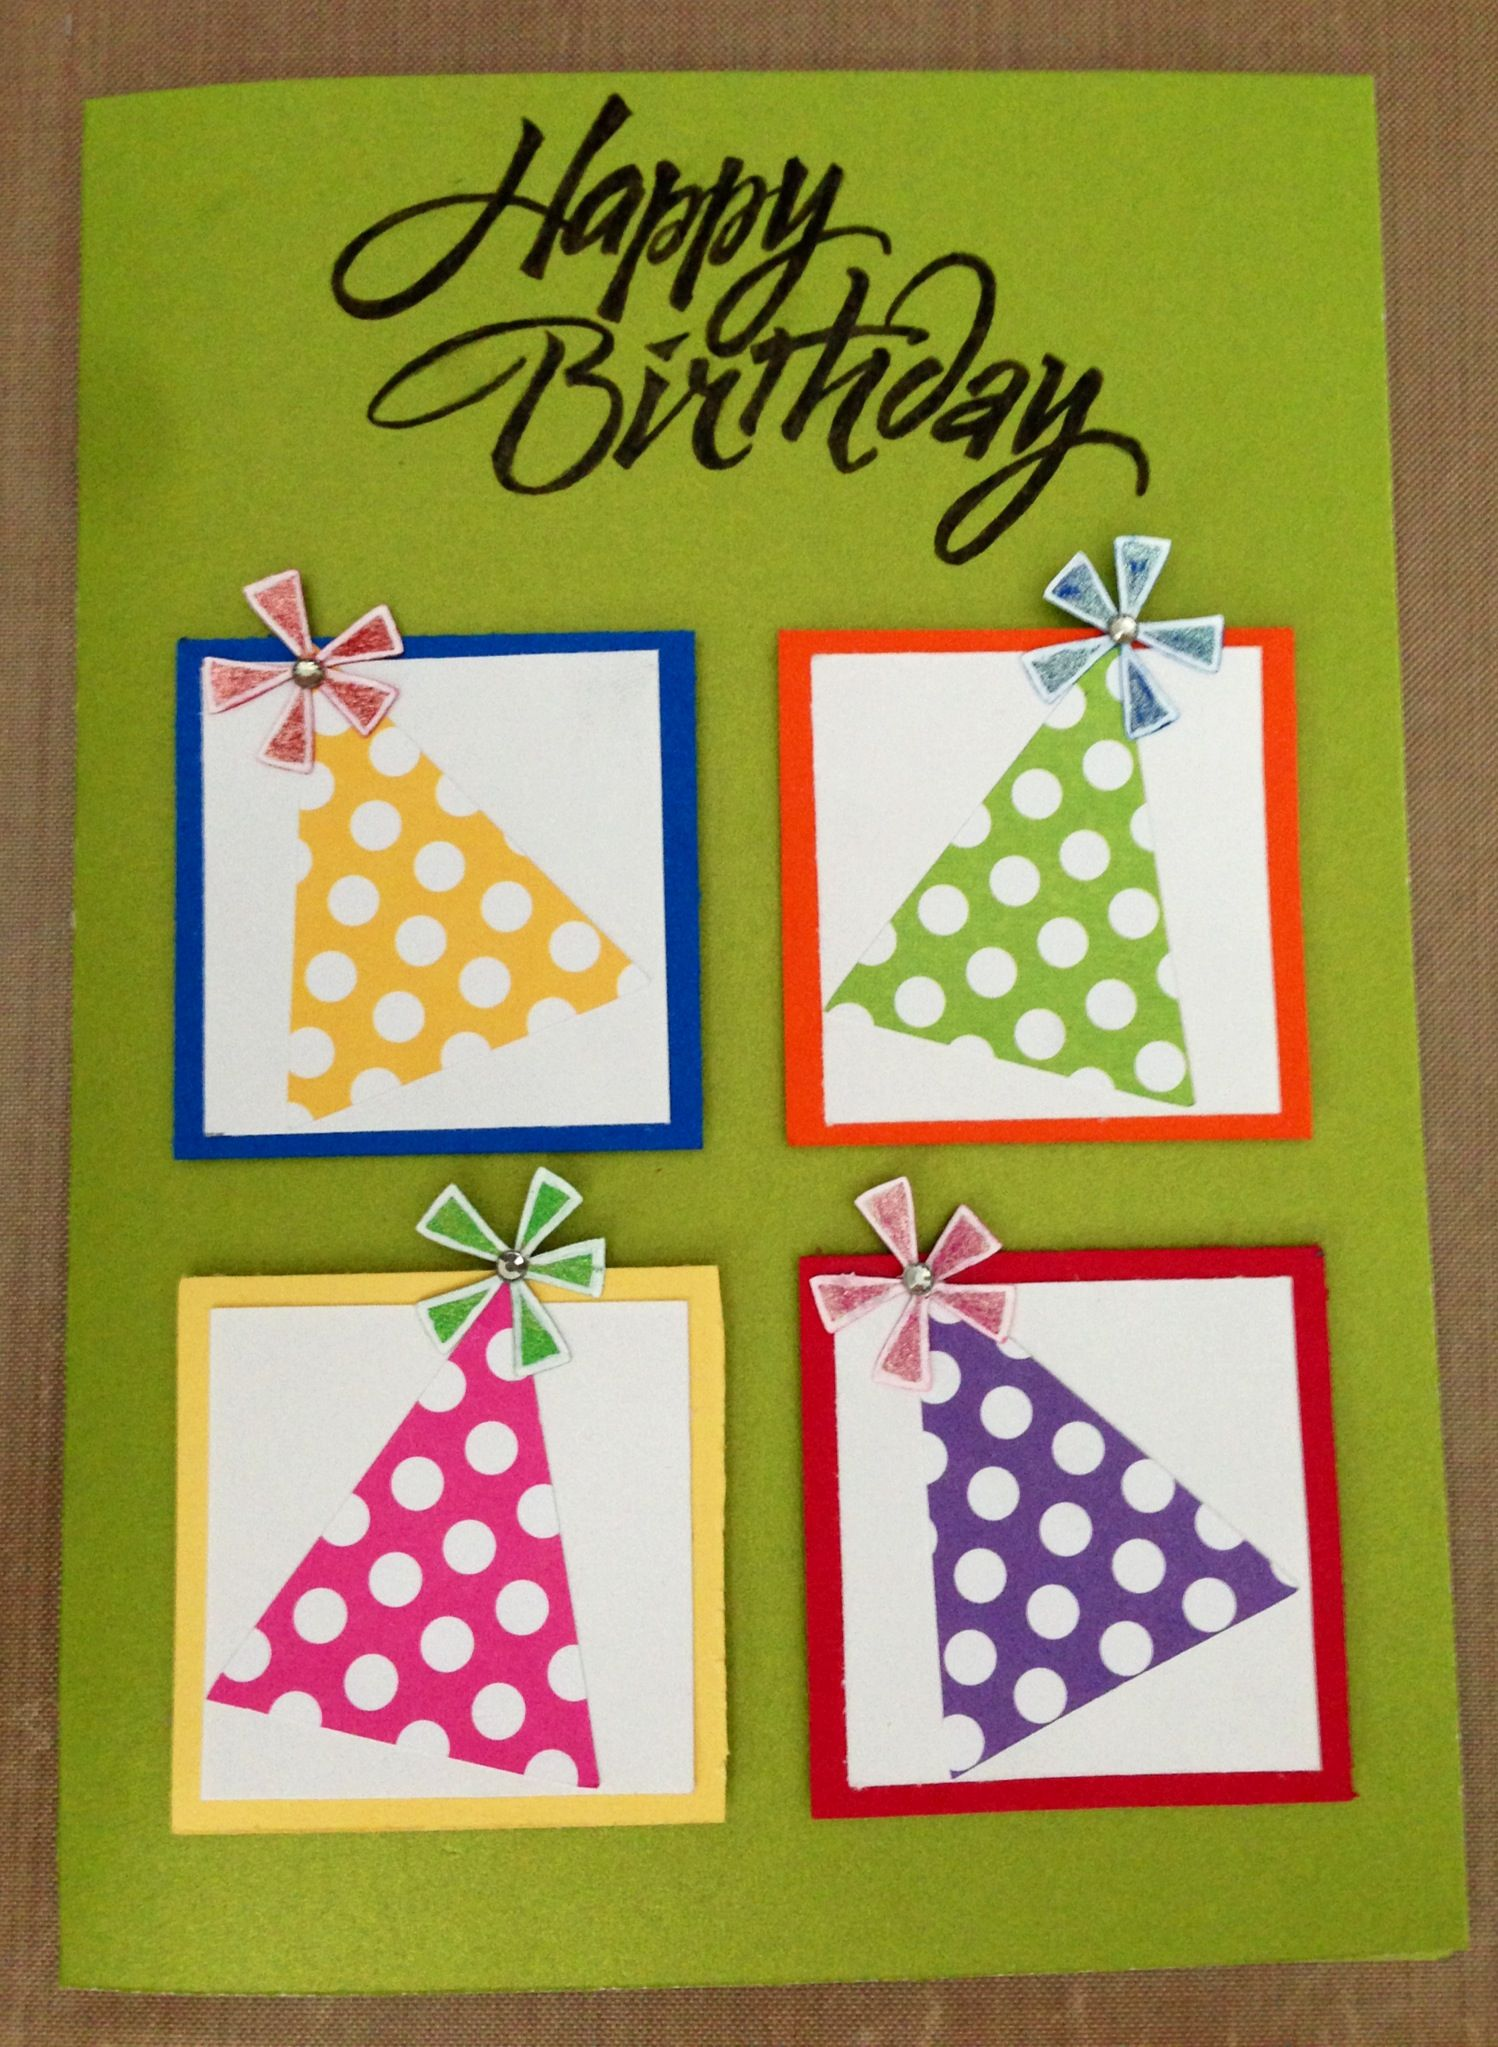 Birthday card httpdosomethingbirthday stamosday birthday card httpdosomethingbirthday bookmarktalkfo Choice Image